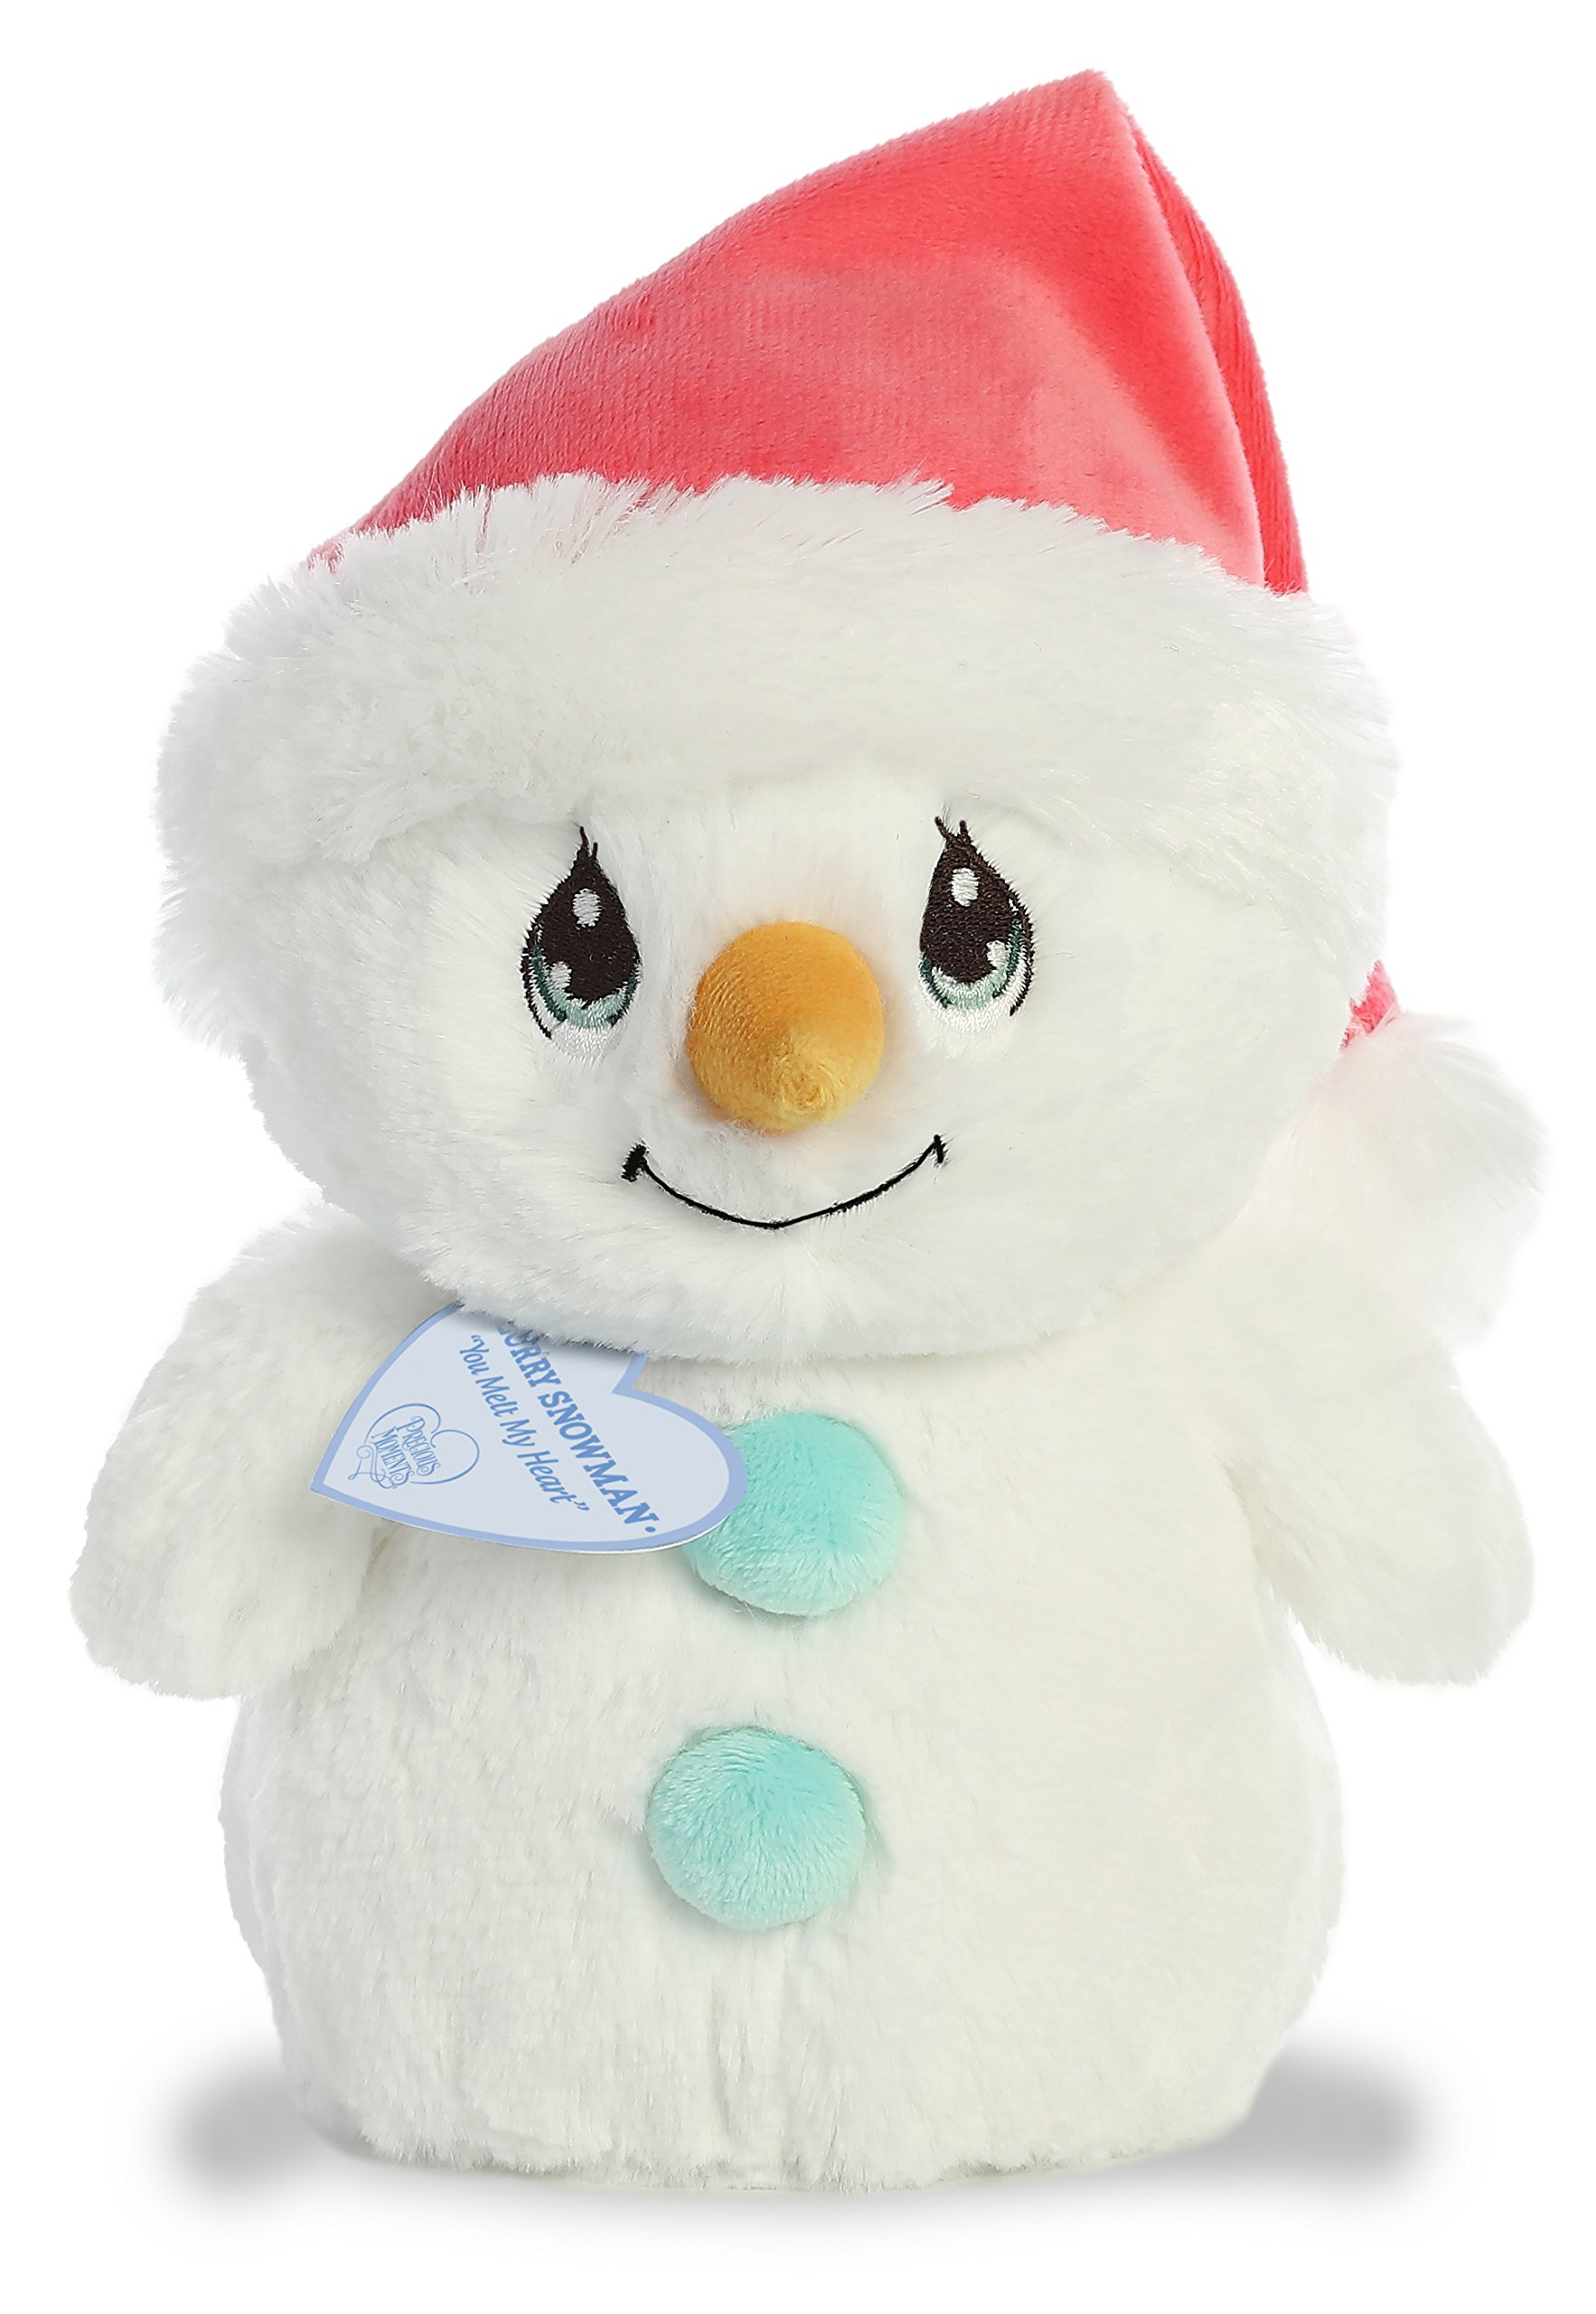 Image of Sweet Precious Moments Holiday Snowman Plush Toy